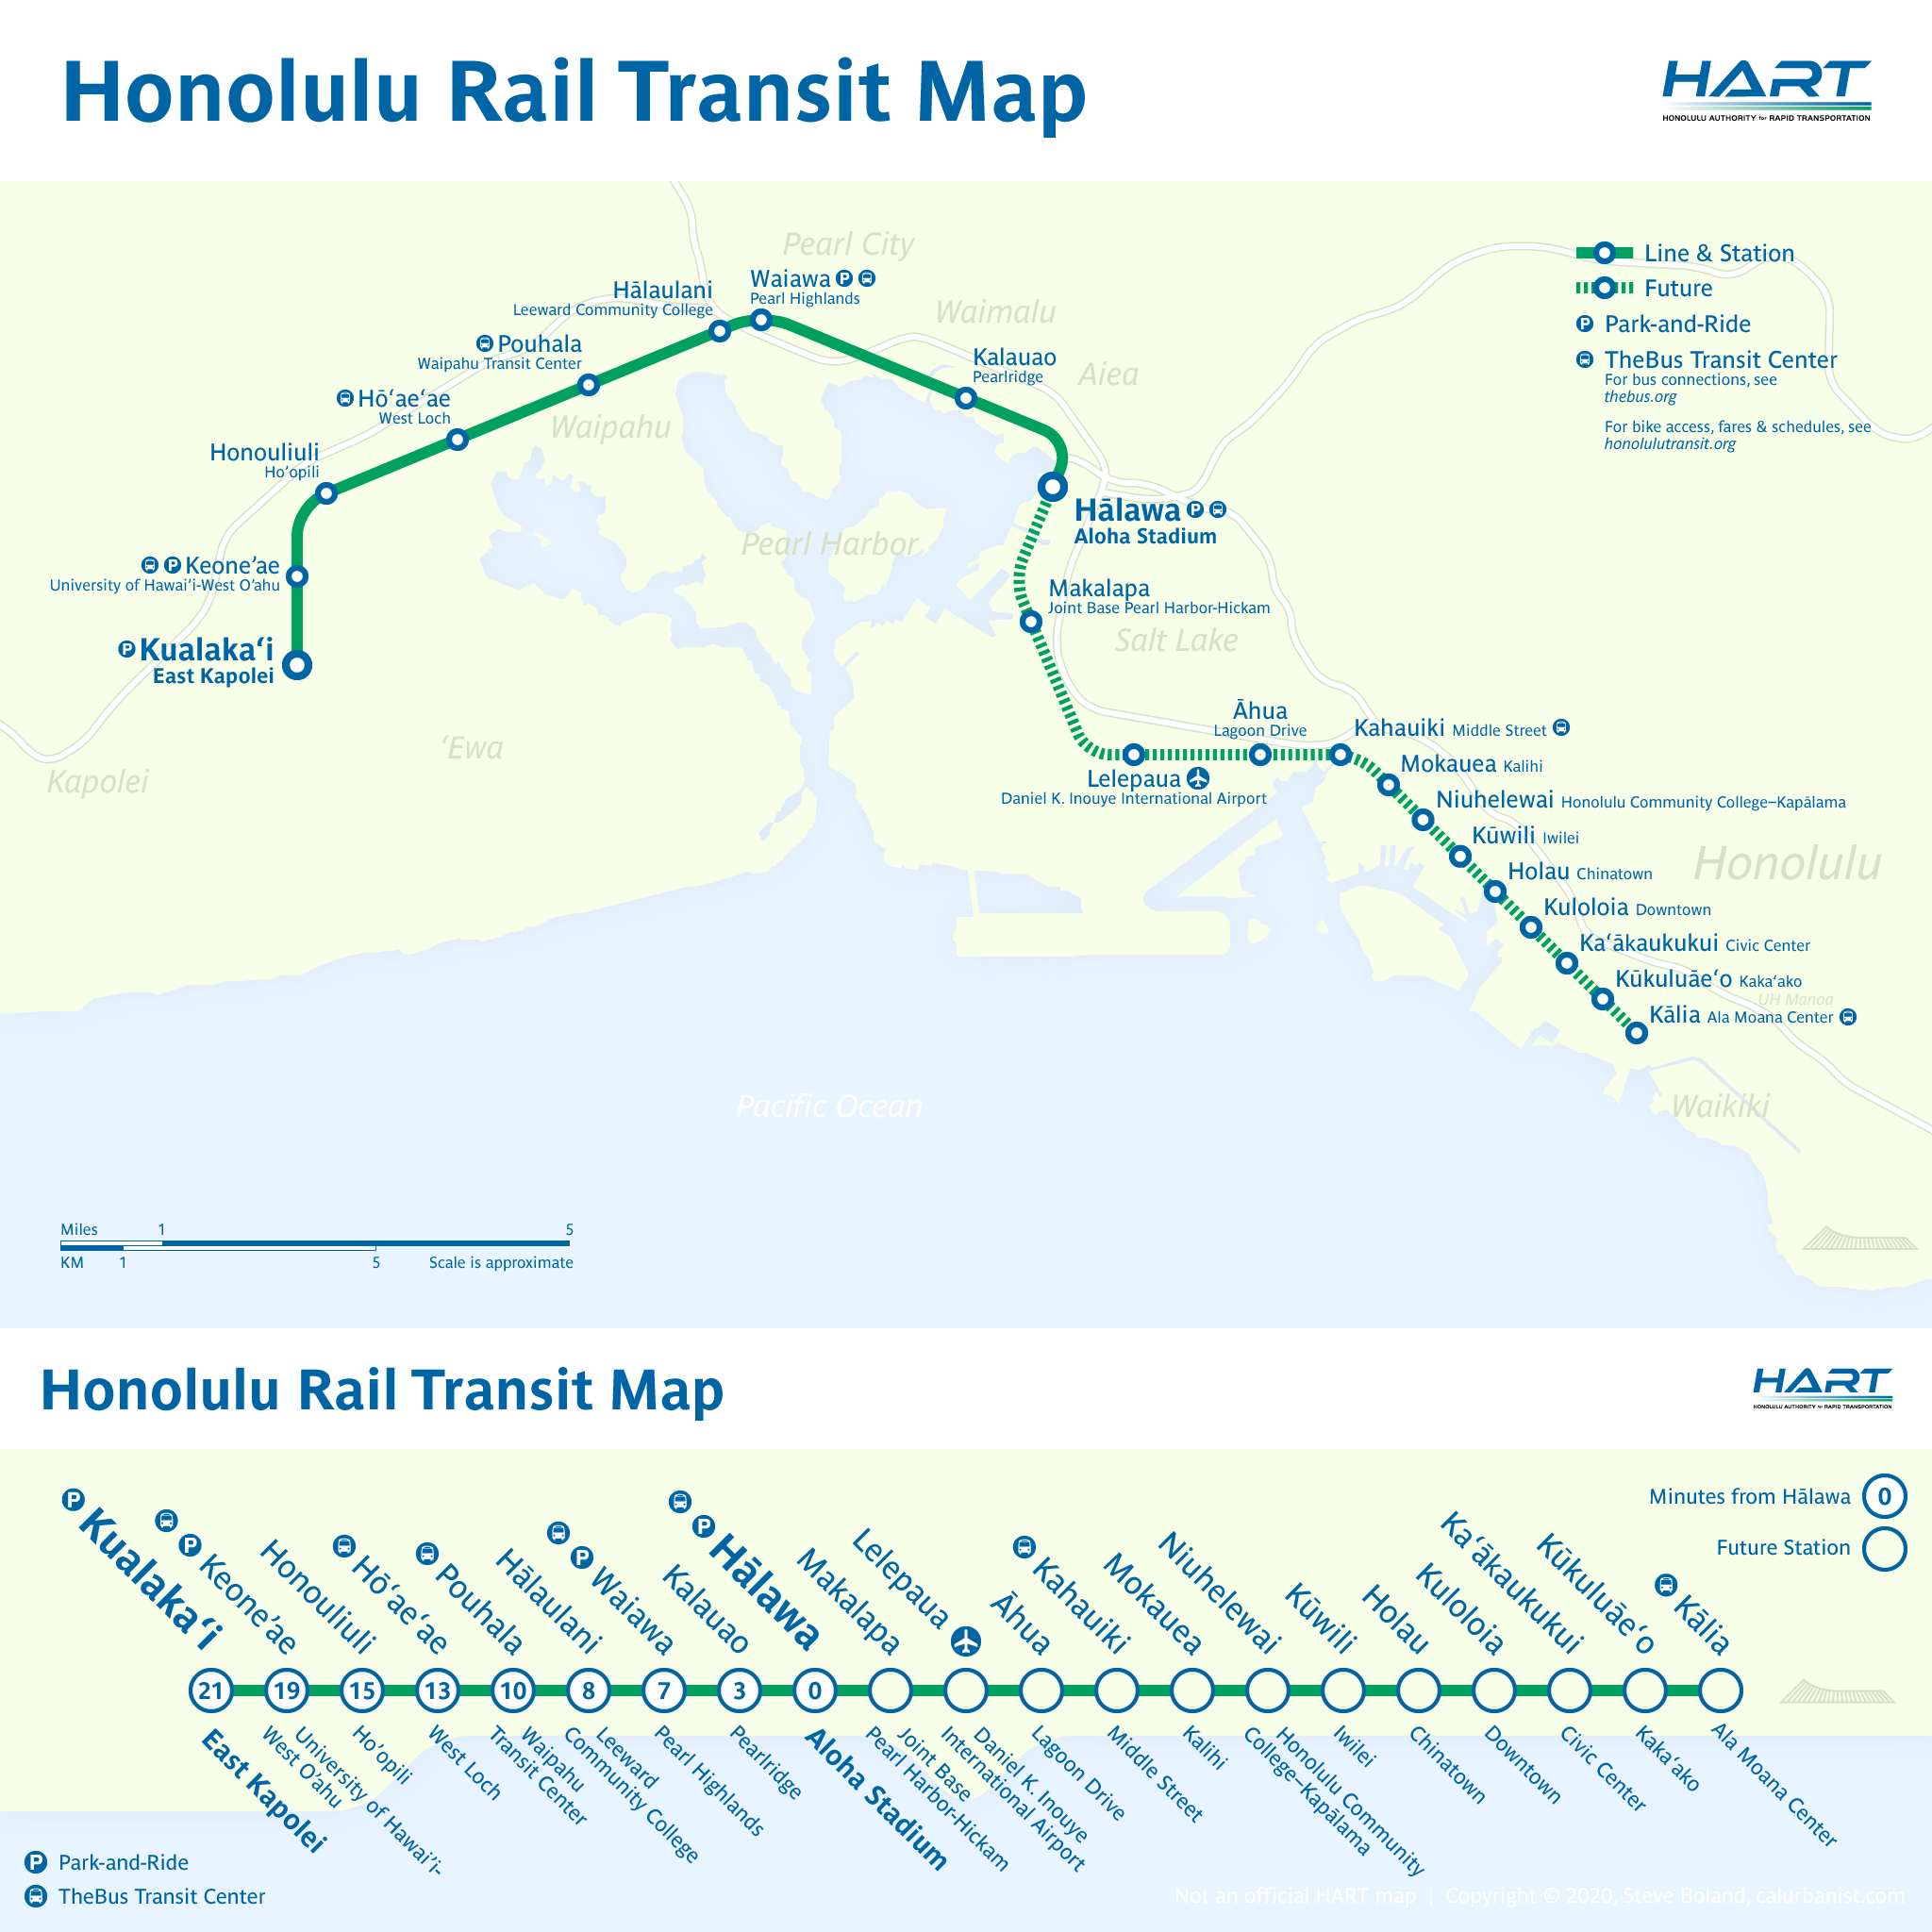 Honolulu Rail Transit Maps by CalUrbanist